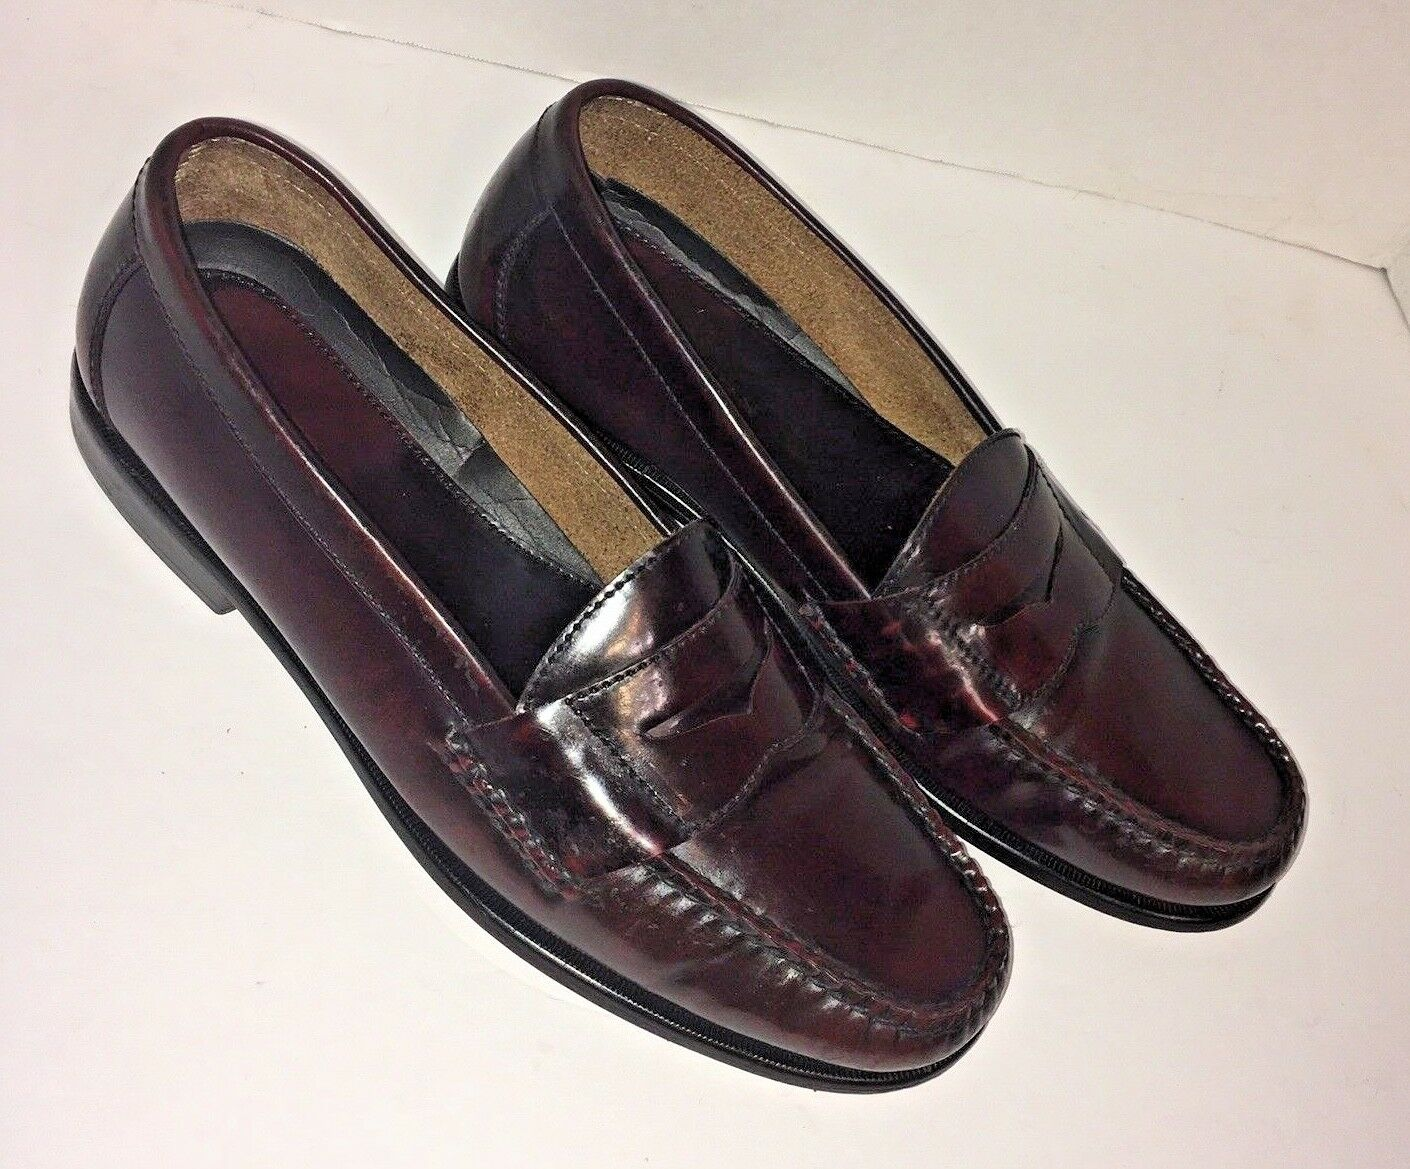 BOSTONIAN Dark Brown Burgundy Leather Penny Loafers Made in Brazil Men 9.5 D